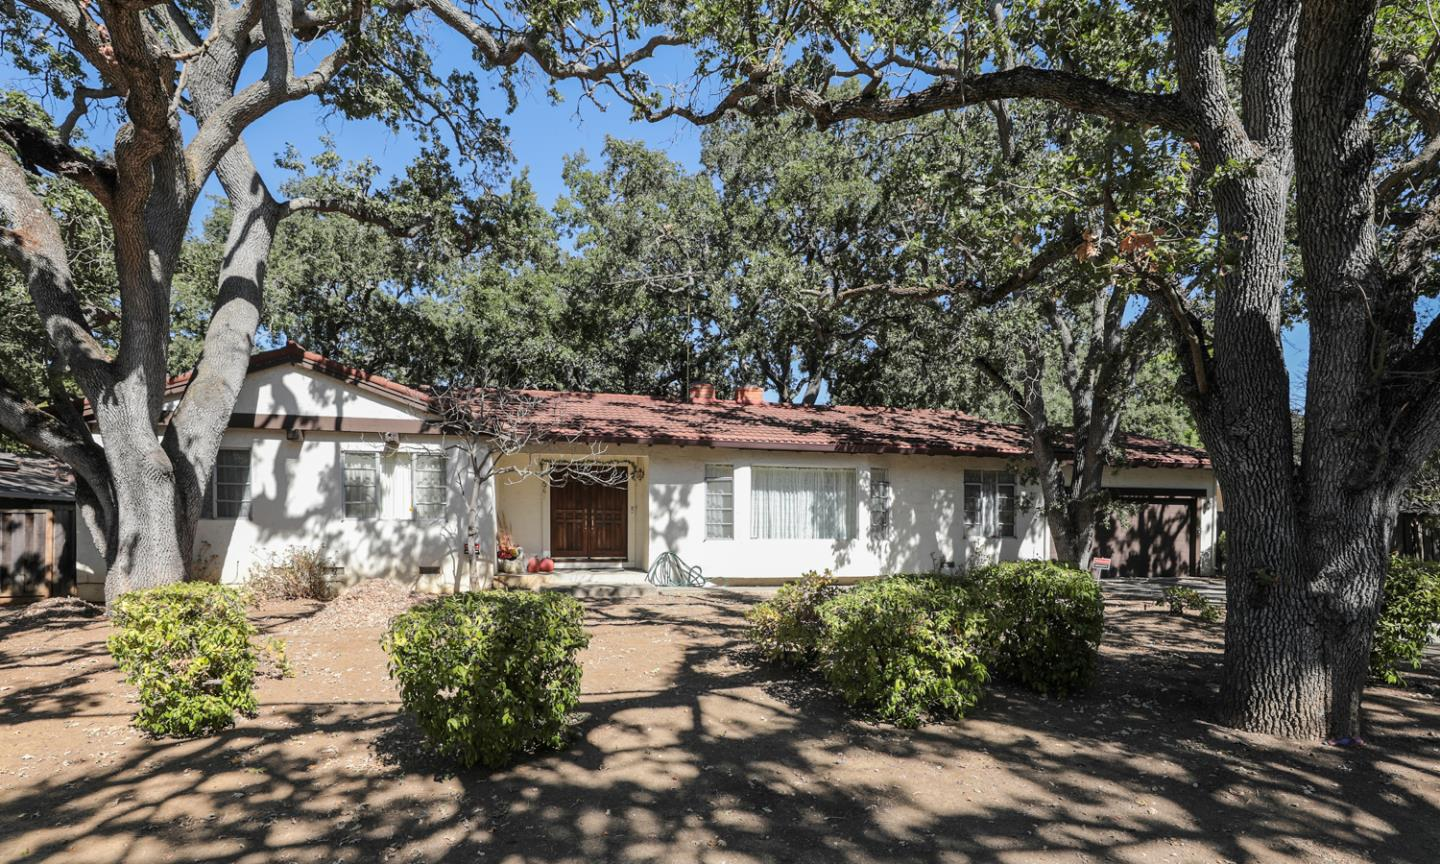 Opportunity knocks! Remodel or build new on this oversized lot. So many possibilities on this 14,286 square foot lot. Remodel/Add on to the existing 1,702 square foot, 4 bedroom, 2 1/2 Bath home built in 1972, or build a new 4,170 square foot home above ground or larger with a basement (Buyer to investigate development potential and size of new home with the City of Los Altos planning department). Enjoy an expansive backyard with a lot that is over 156 feet deep on the right side and 173 feet deep on the left side. The street frontage of the property is 103 feet (all measurements taken from the Plot Map, Buyer to verify). Situated in a fantastic neighborhood with many high end, newly constructed homes. Property is ideally located within walking distance to Rancho Shopping Center, Loyola Elementary School, Pinewood Schools Elementary campuses, and is a short distance to downtown Los Altos.